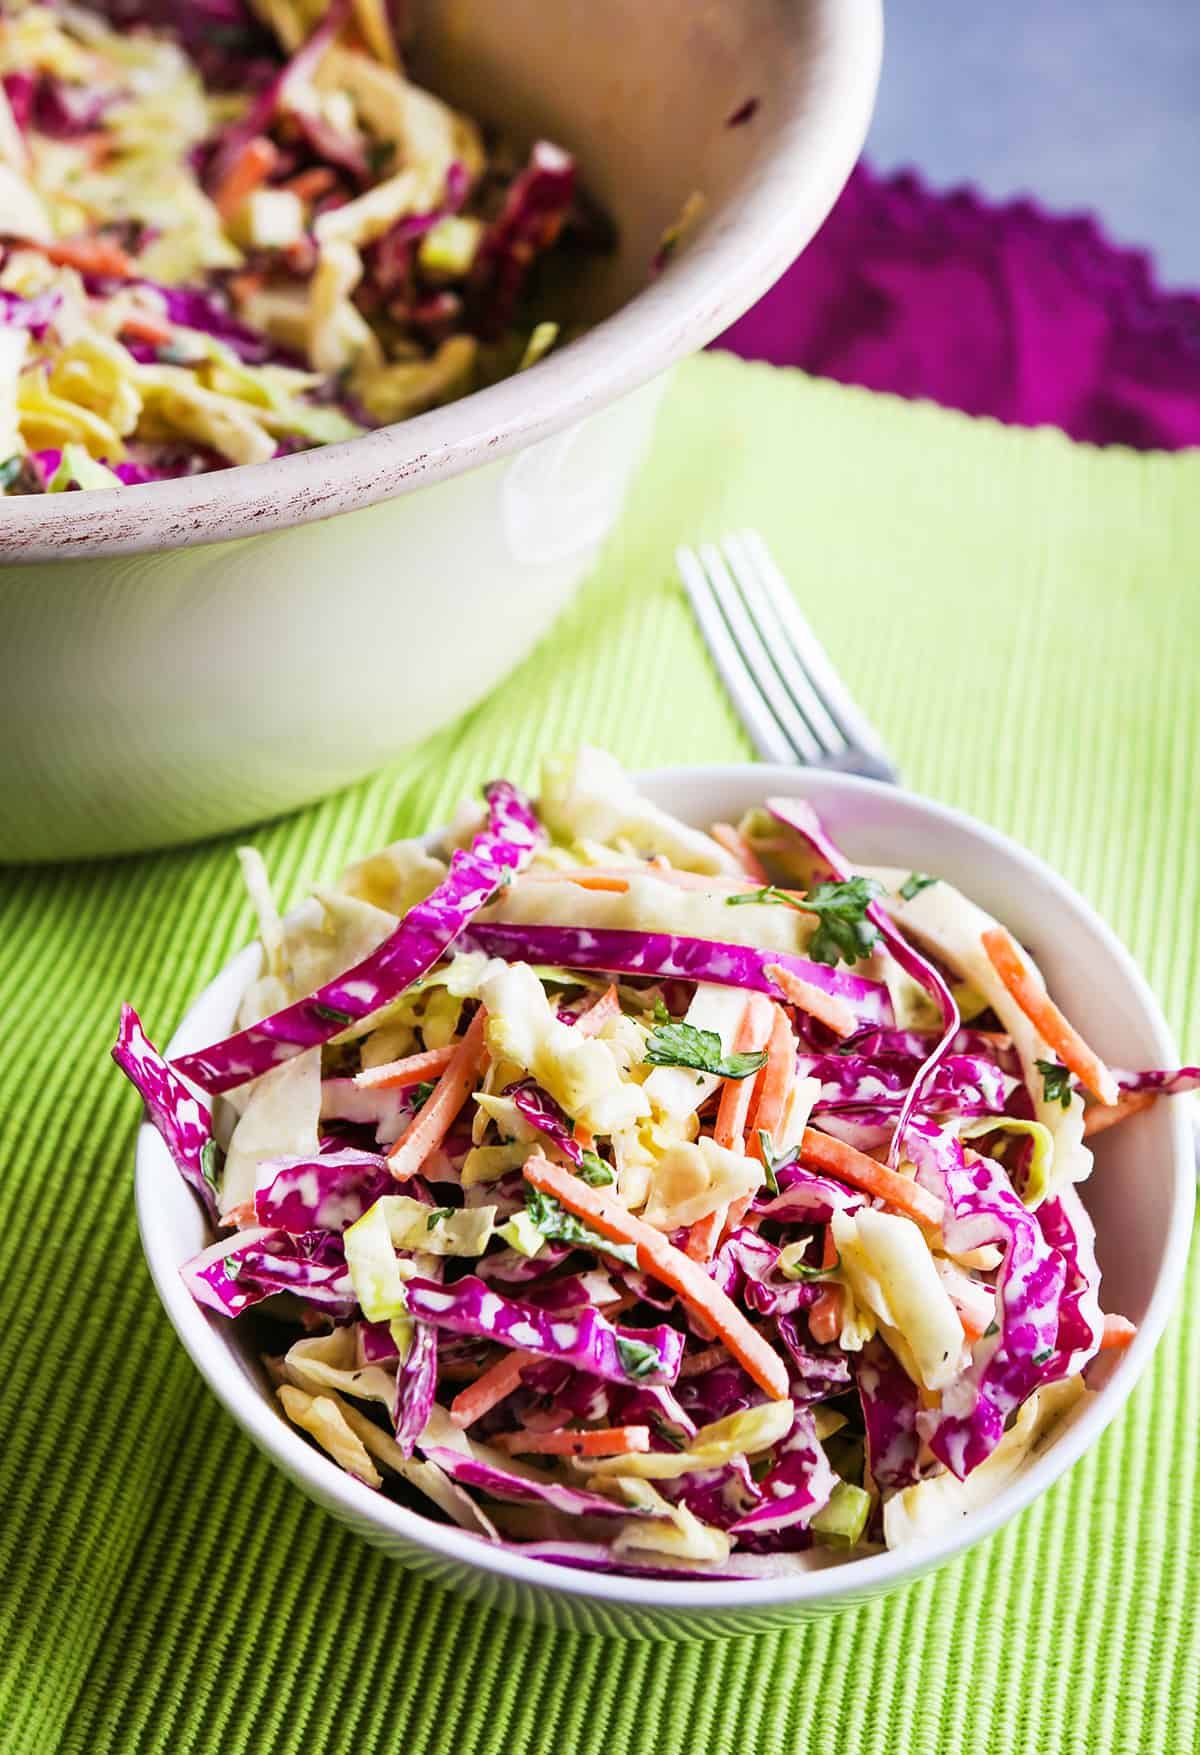 Serving of coleslaw in a bowl sitting next to mixing bowl.